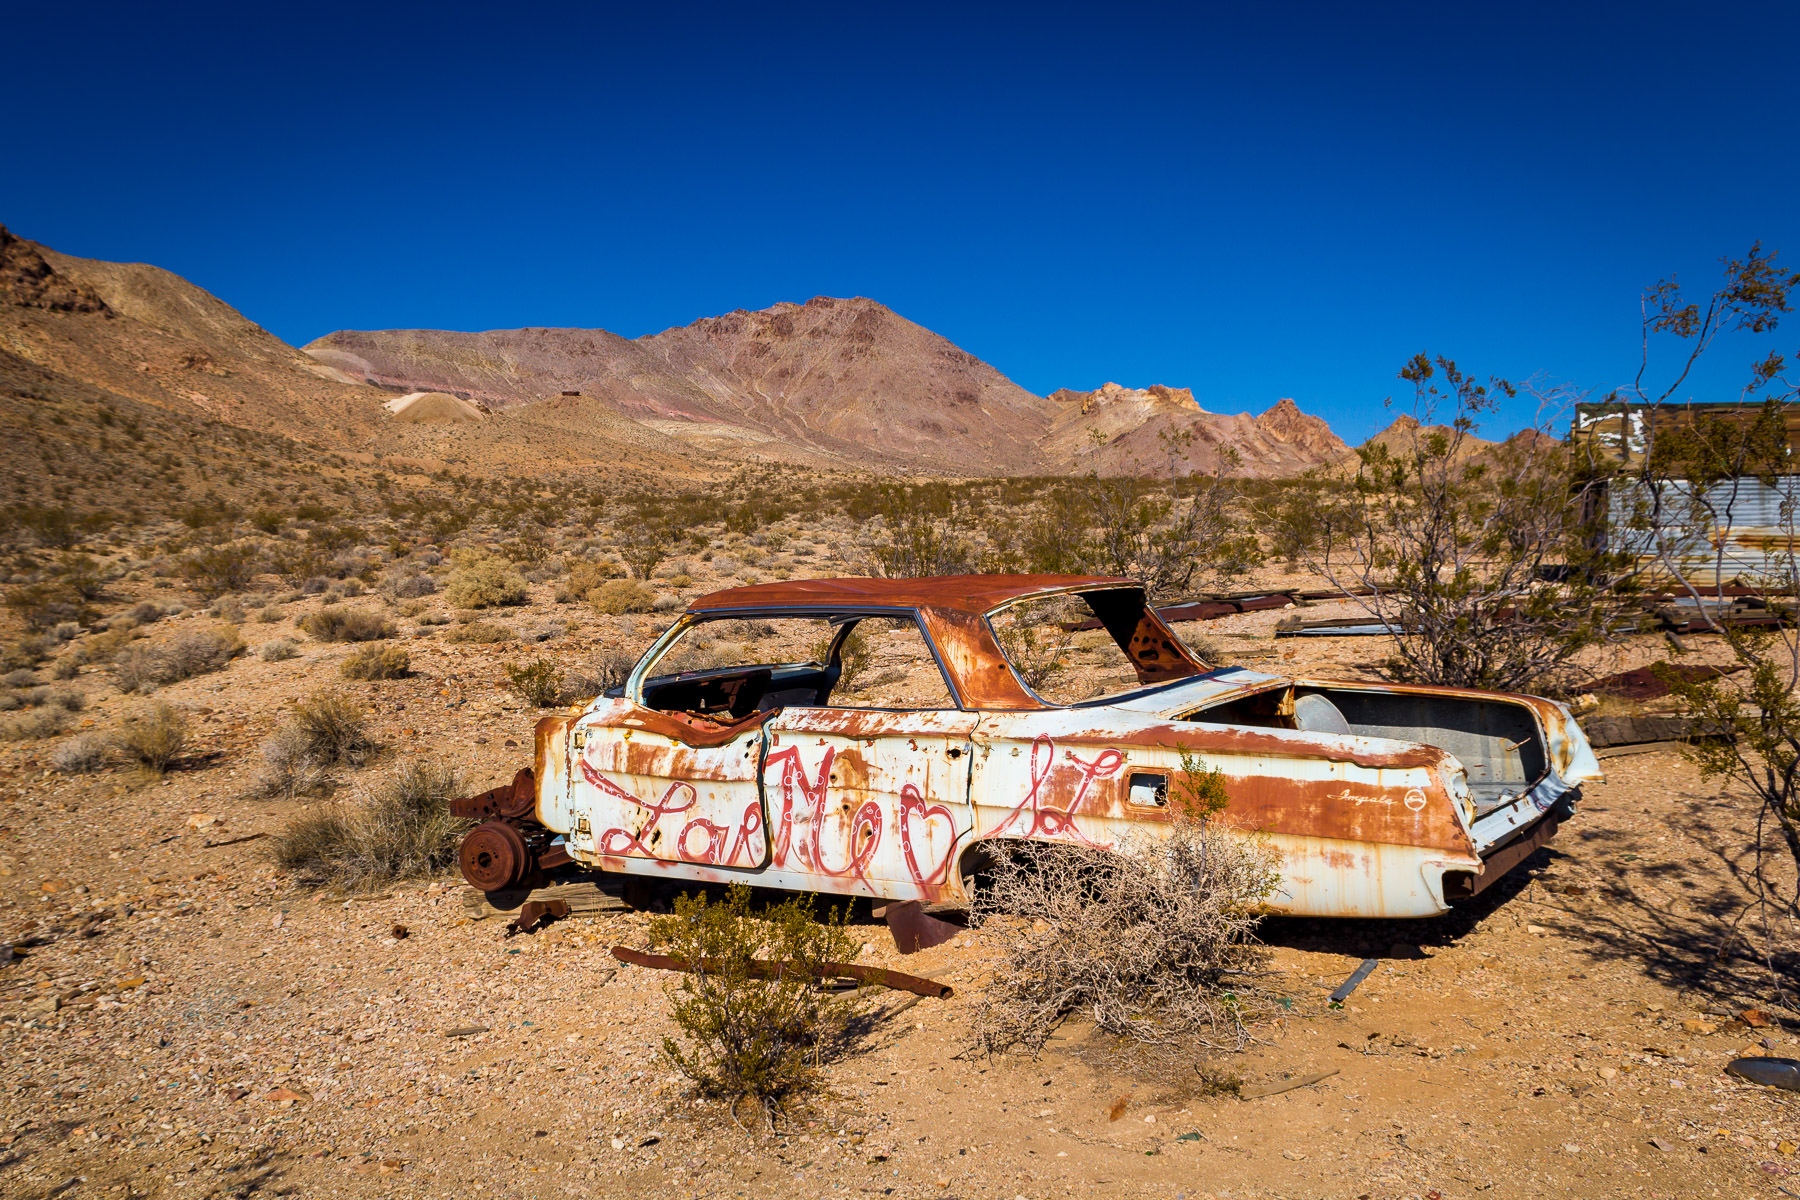 An old Chevrolet Impala rusts in the desert at the Nevada ghost town of Rhyolite.